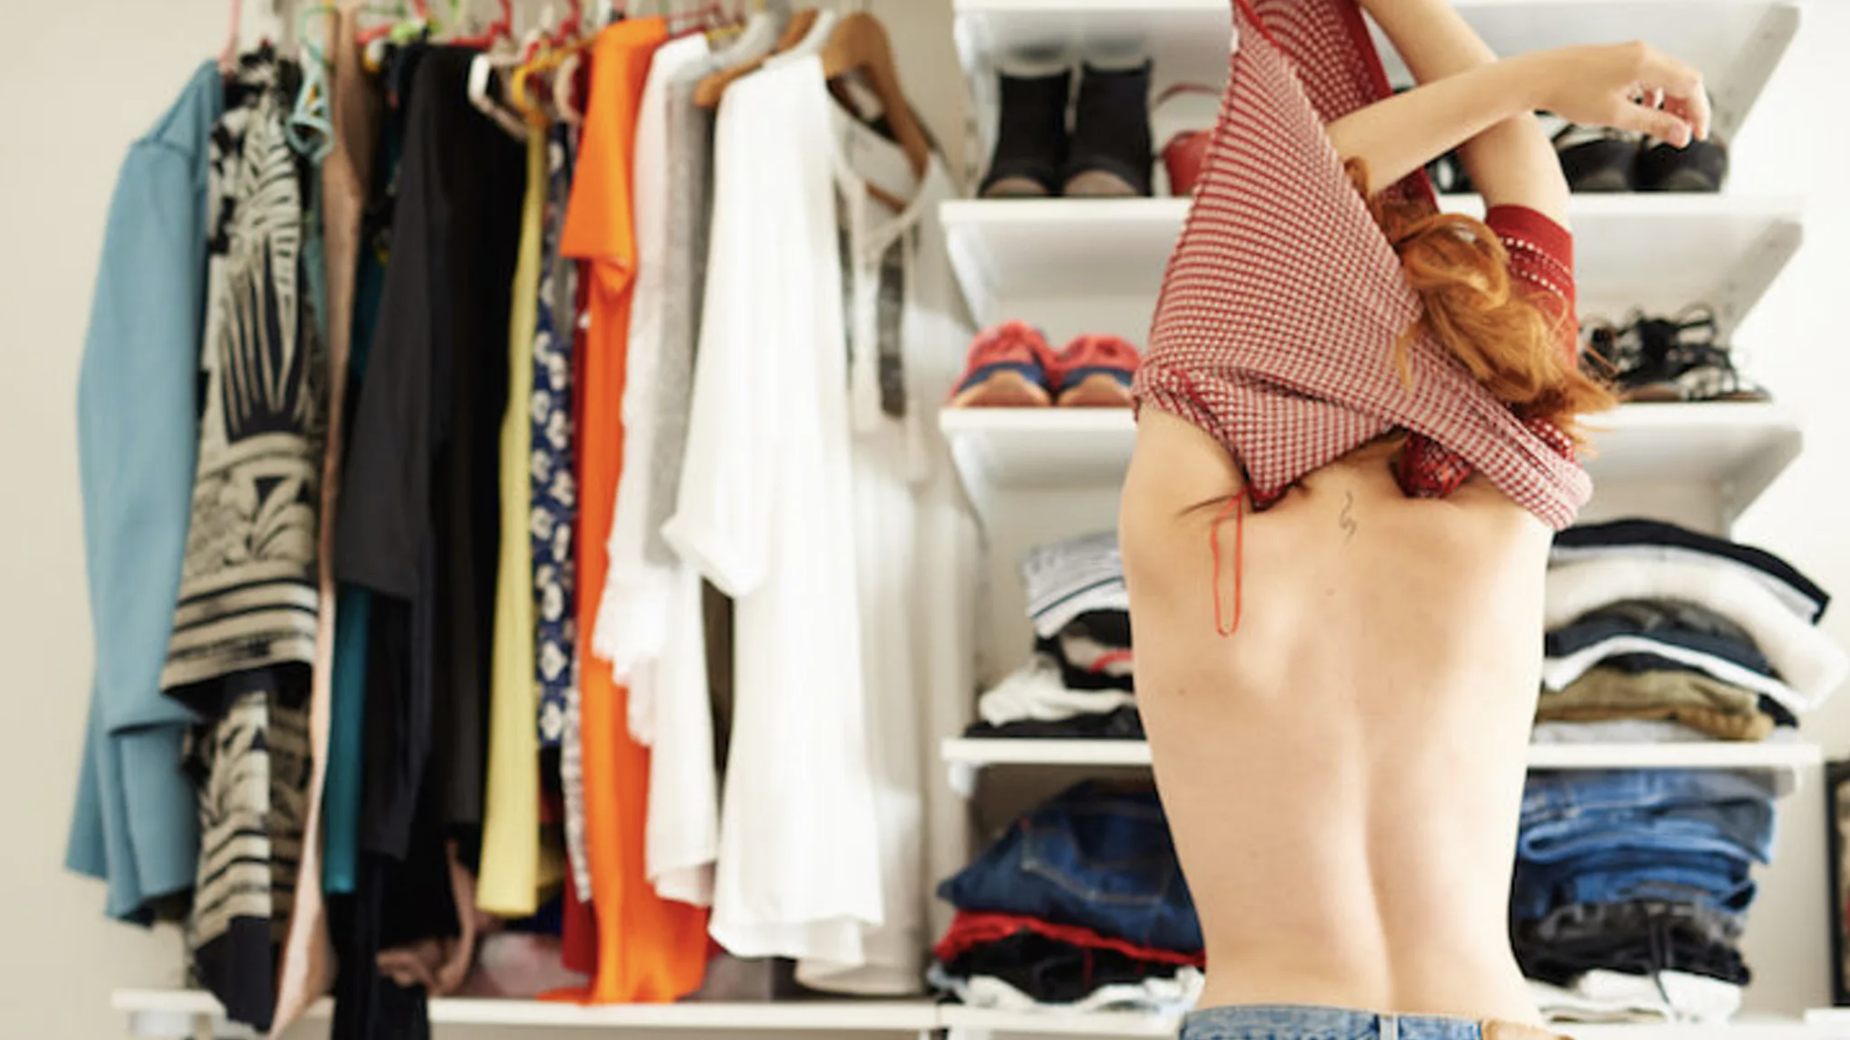 Take It Off: 7 Struggles Of Being A Nudist In A World Full Of Clothes